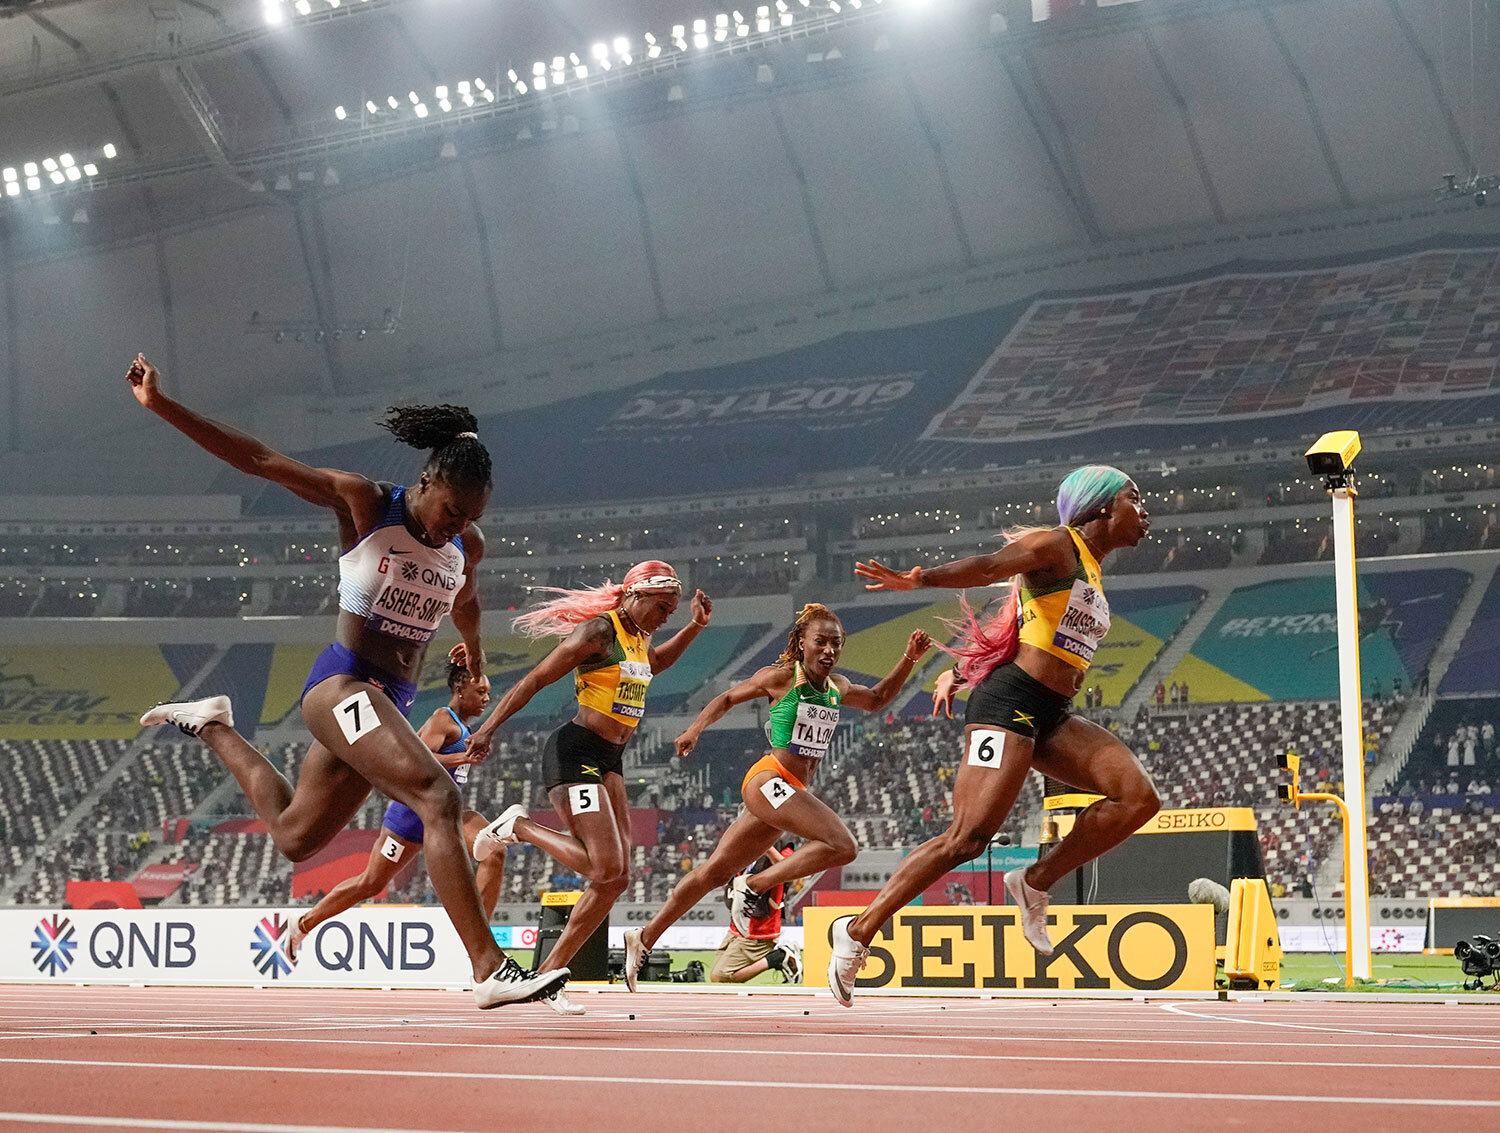 Shelly-Ann Fraser-Pryce (6), of Jamaica, finishes ahead of Dina Asher-Smith (7), of Great Britain, and Marie-Josée Ta Lou (4), of The Ivory Coast, in the women's 100-meter final at the World Athletics Championships in Doha, Qatar, Sunday, Sept. 29, 2019. (AP Photo/David J. Phillip)